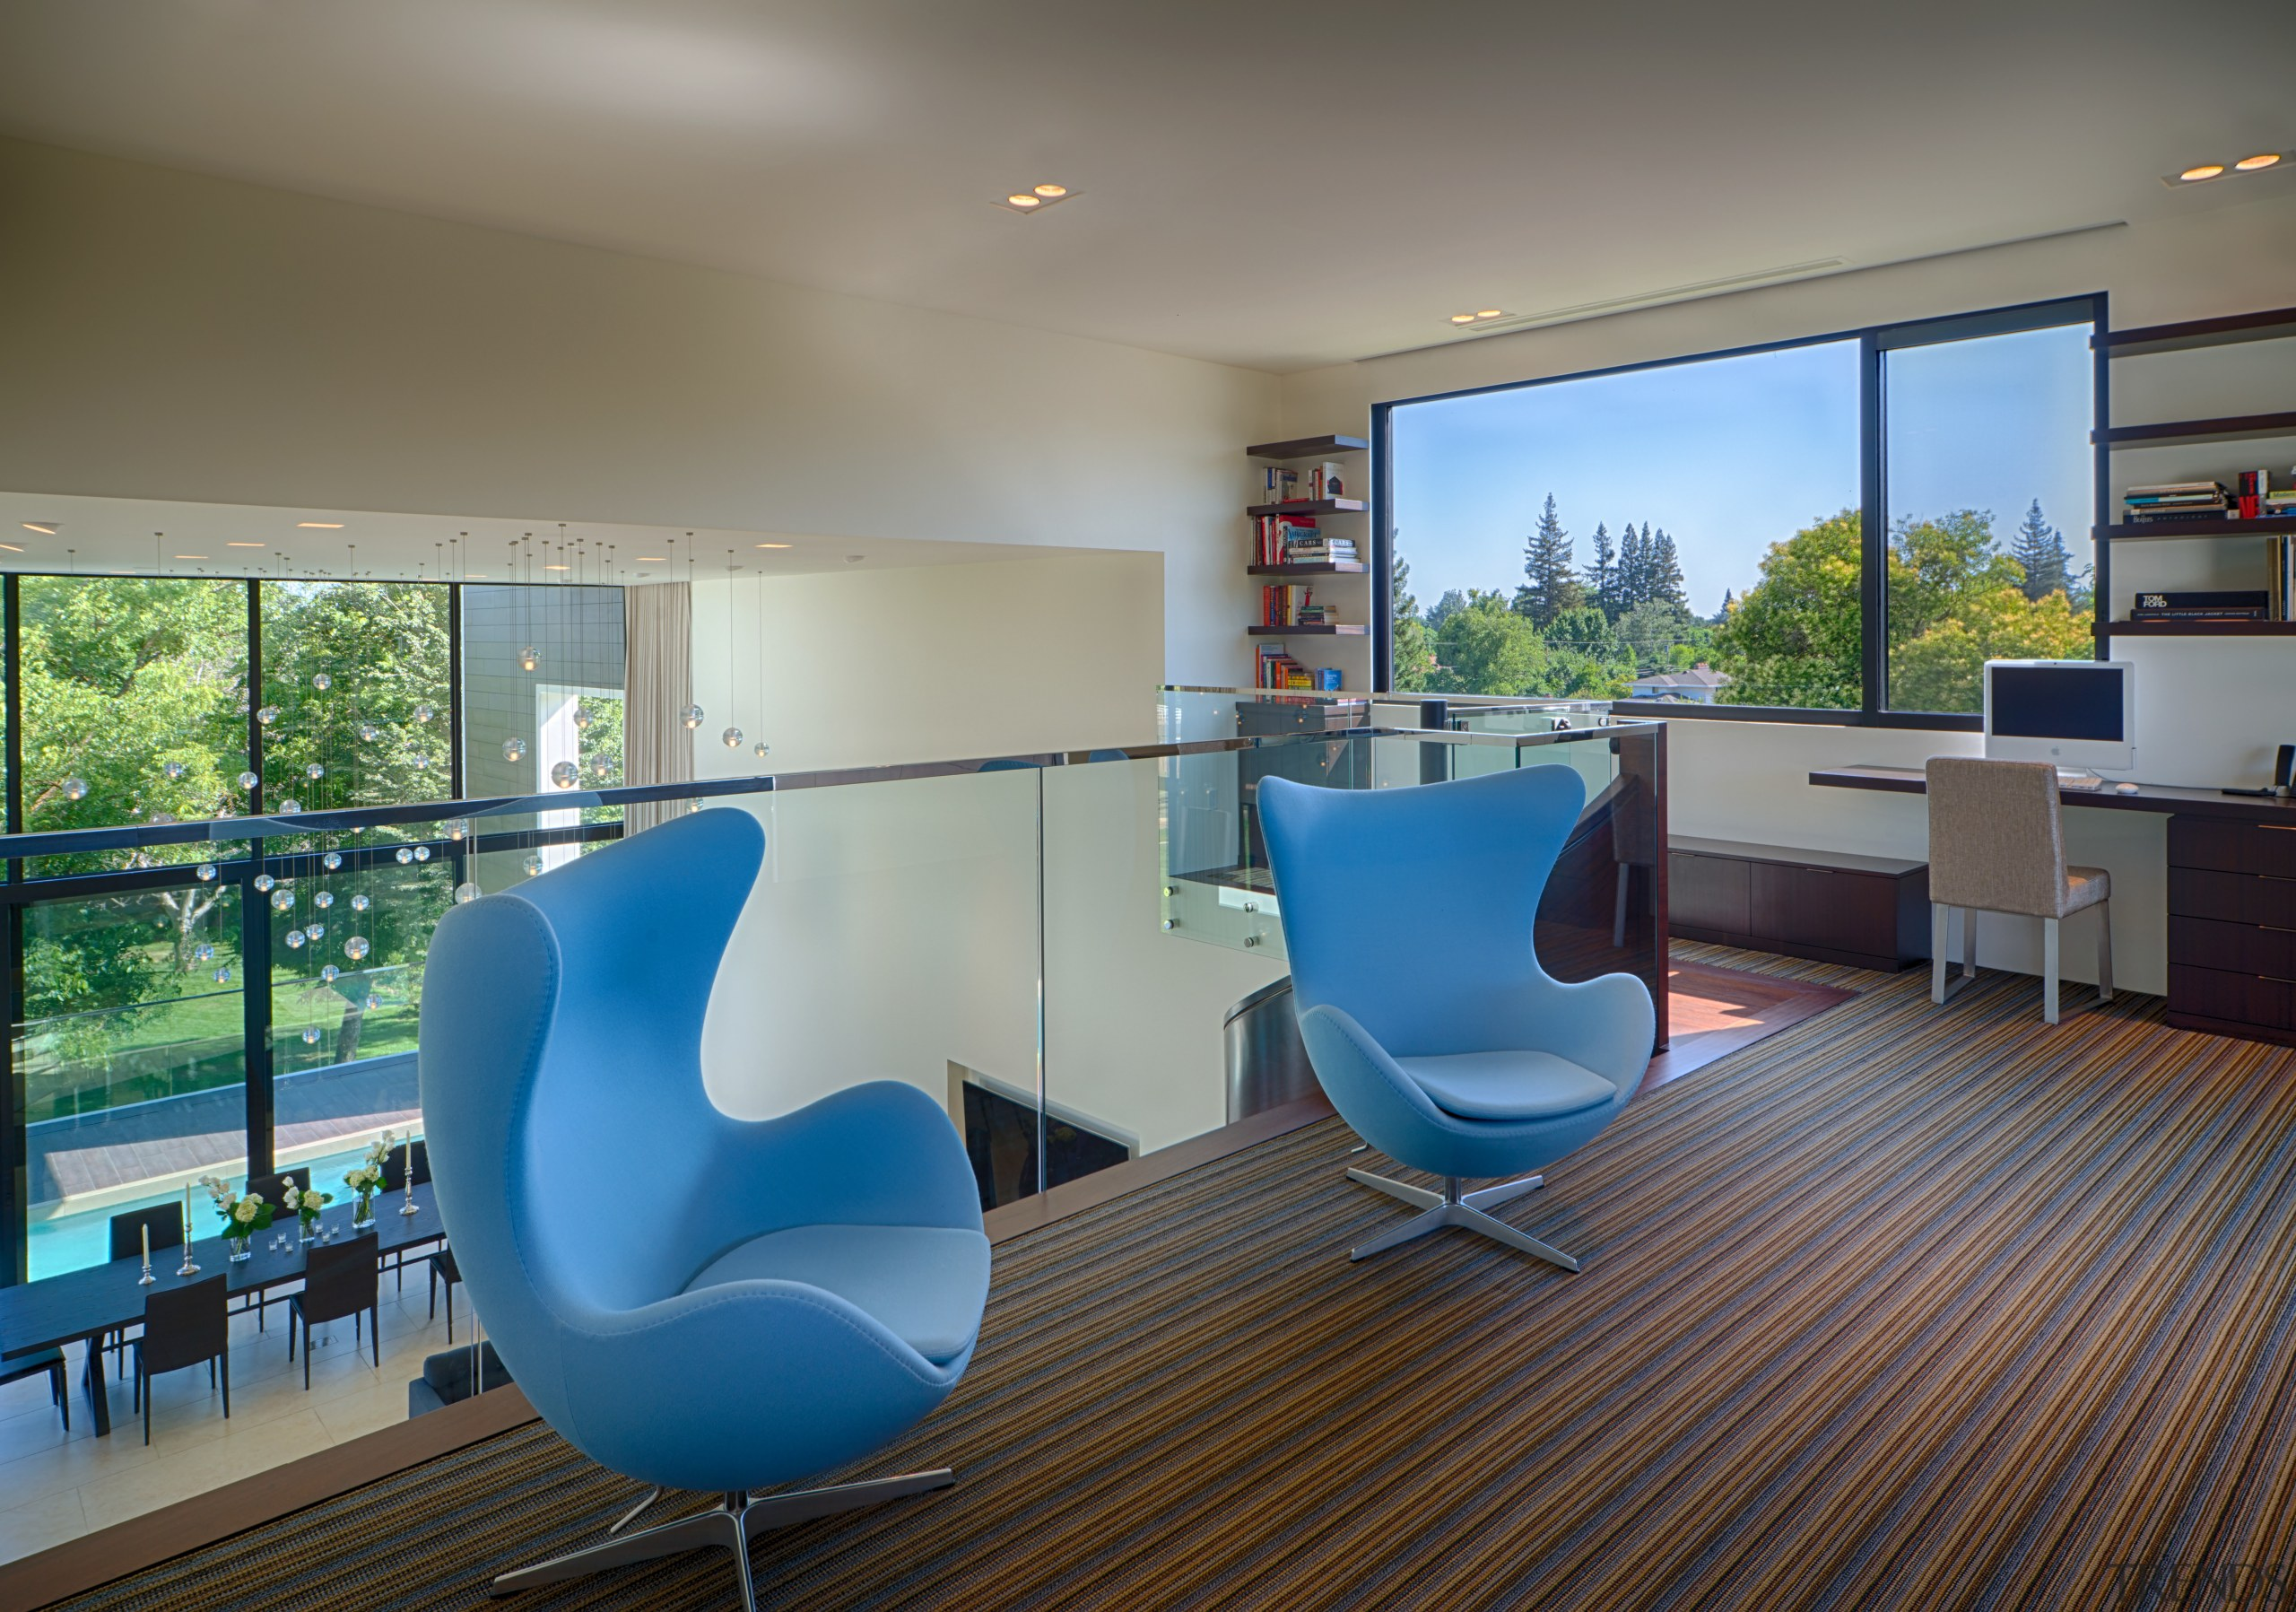 The mezzanine home office also provides an alternative apartment, architecture, floor, home, house, interior design, living room, real estate, gray